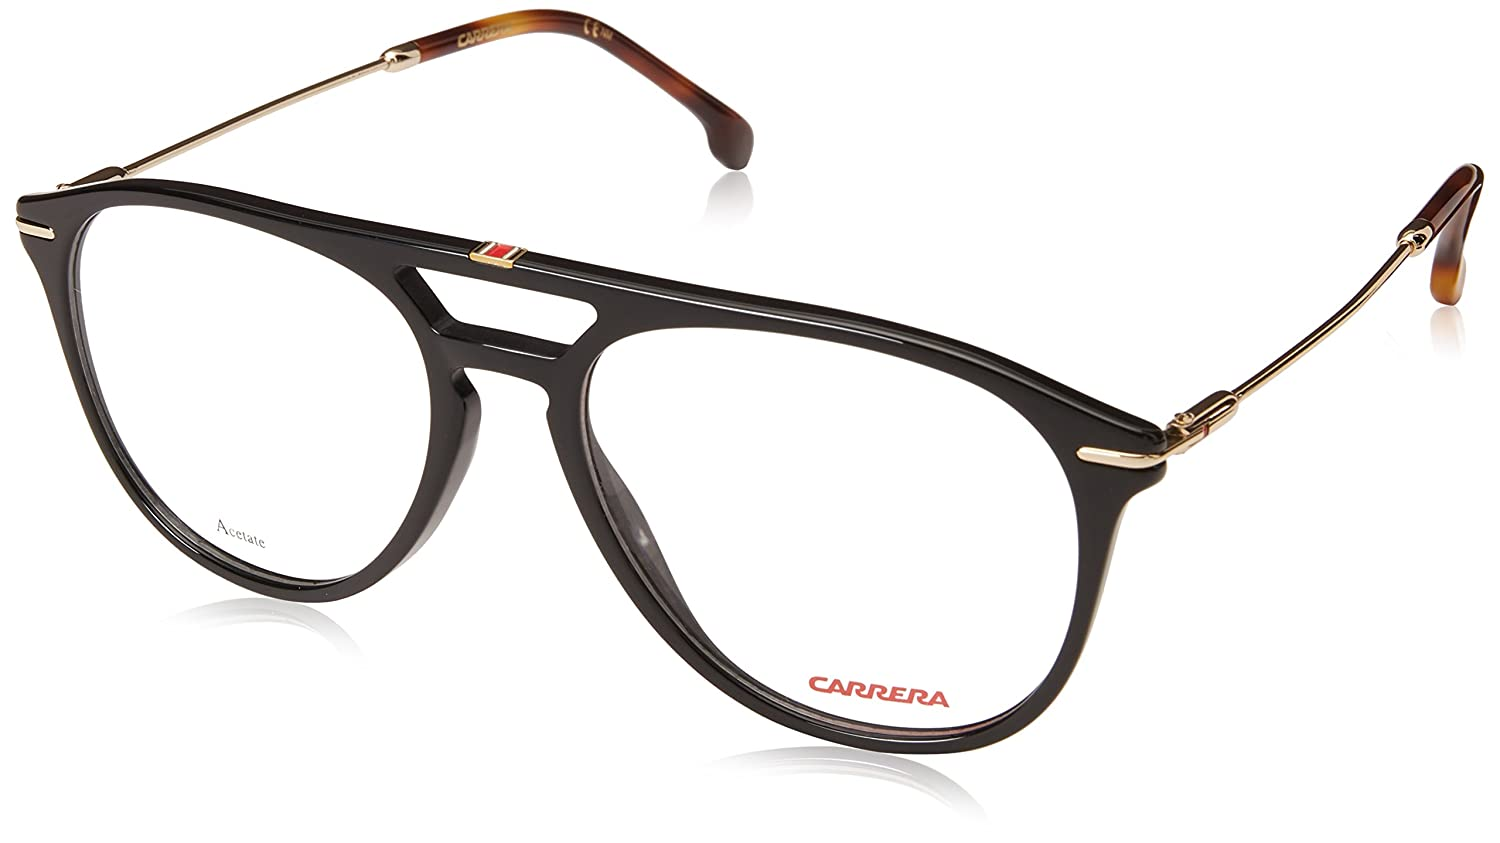 7f2a92dcba39 Carrera Acetate Black Full Rim Aviator Unisex Spectacle Frame (168-V 53):  Amazon.in: Clothing & Accessories